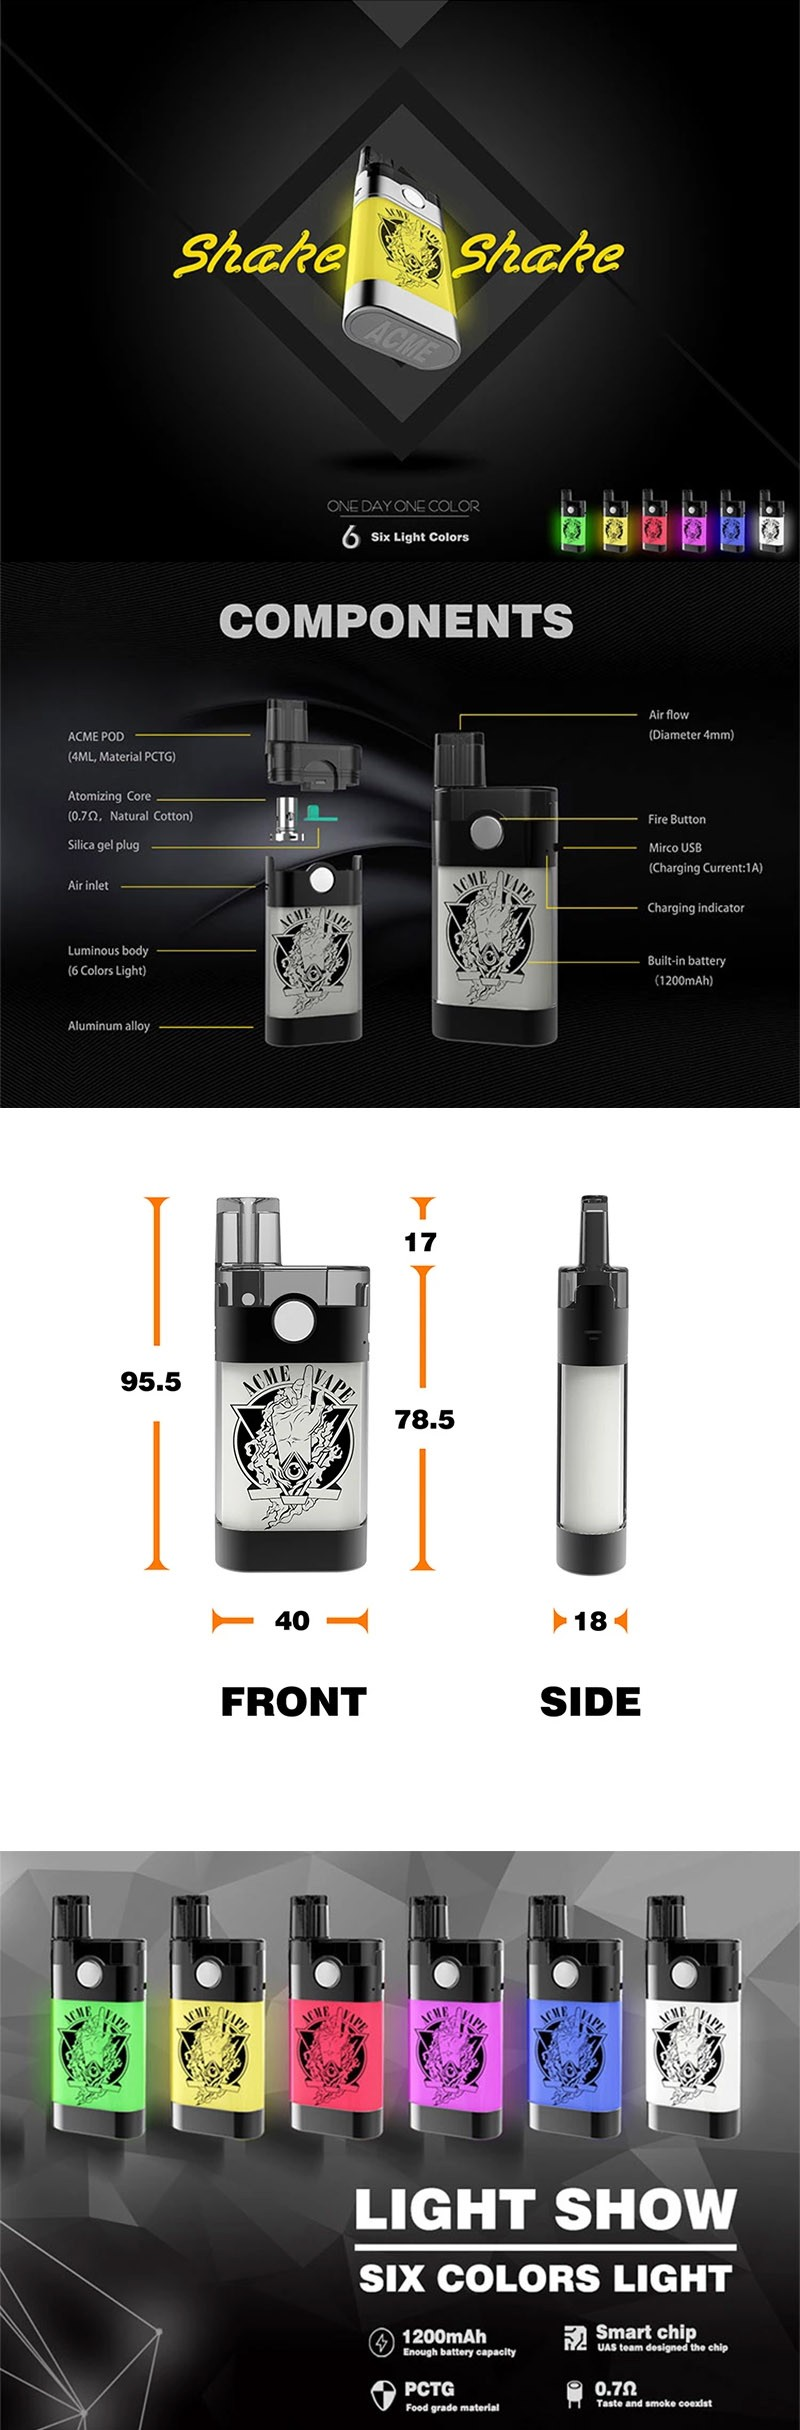 Yuoto ACME 1200mAh Pod System Vape Starter Kit w/ 6 Changing Light